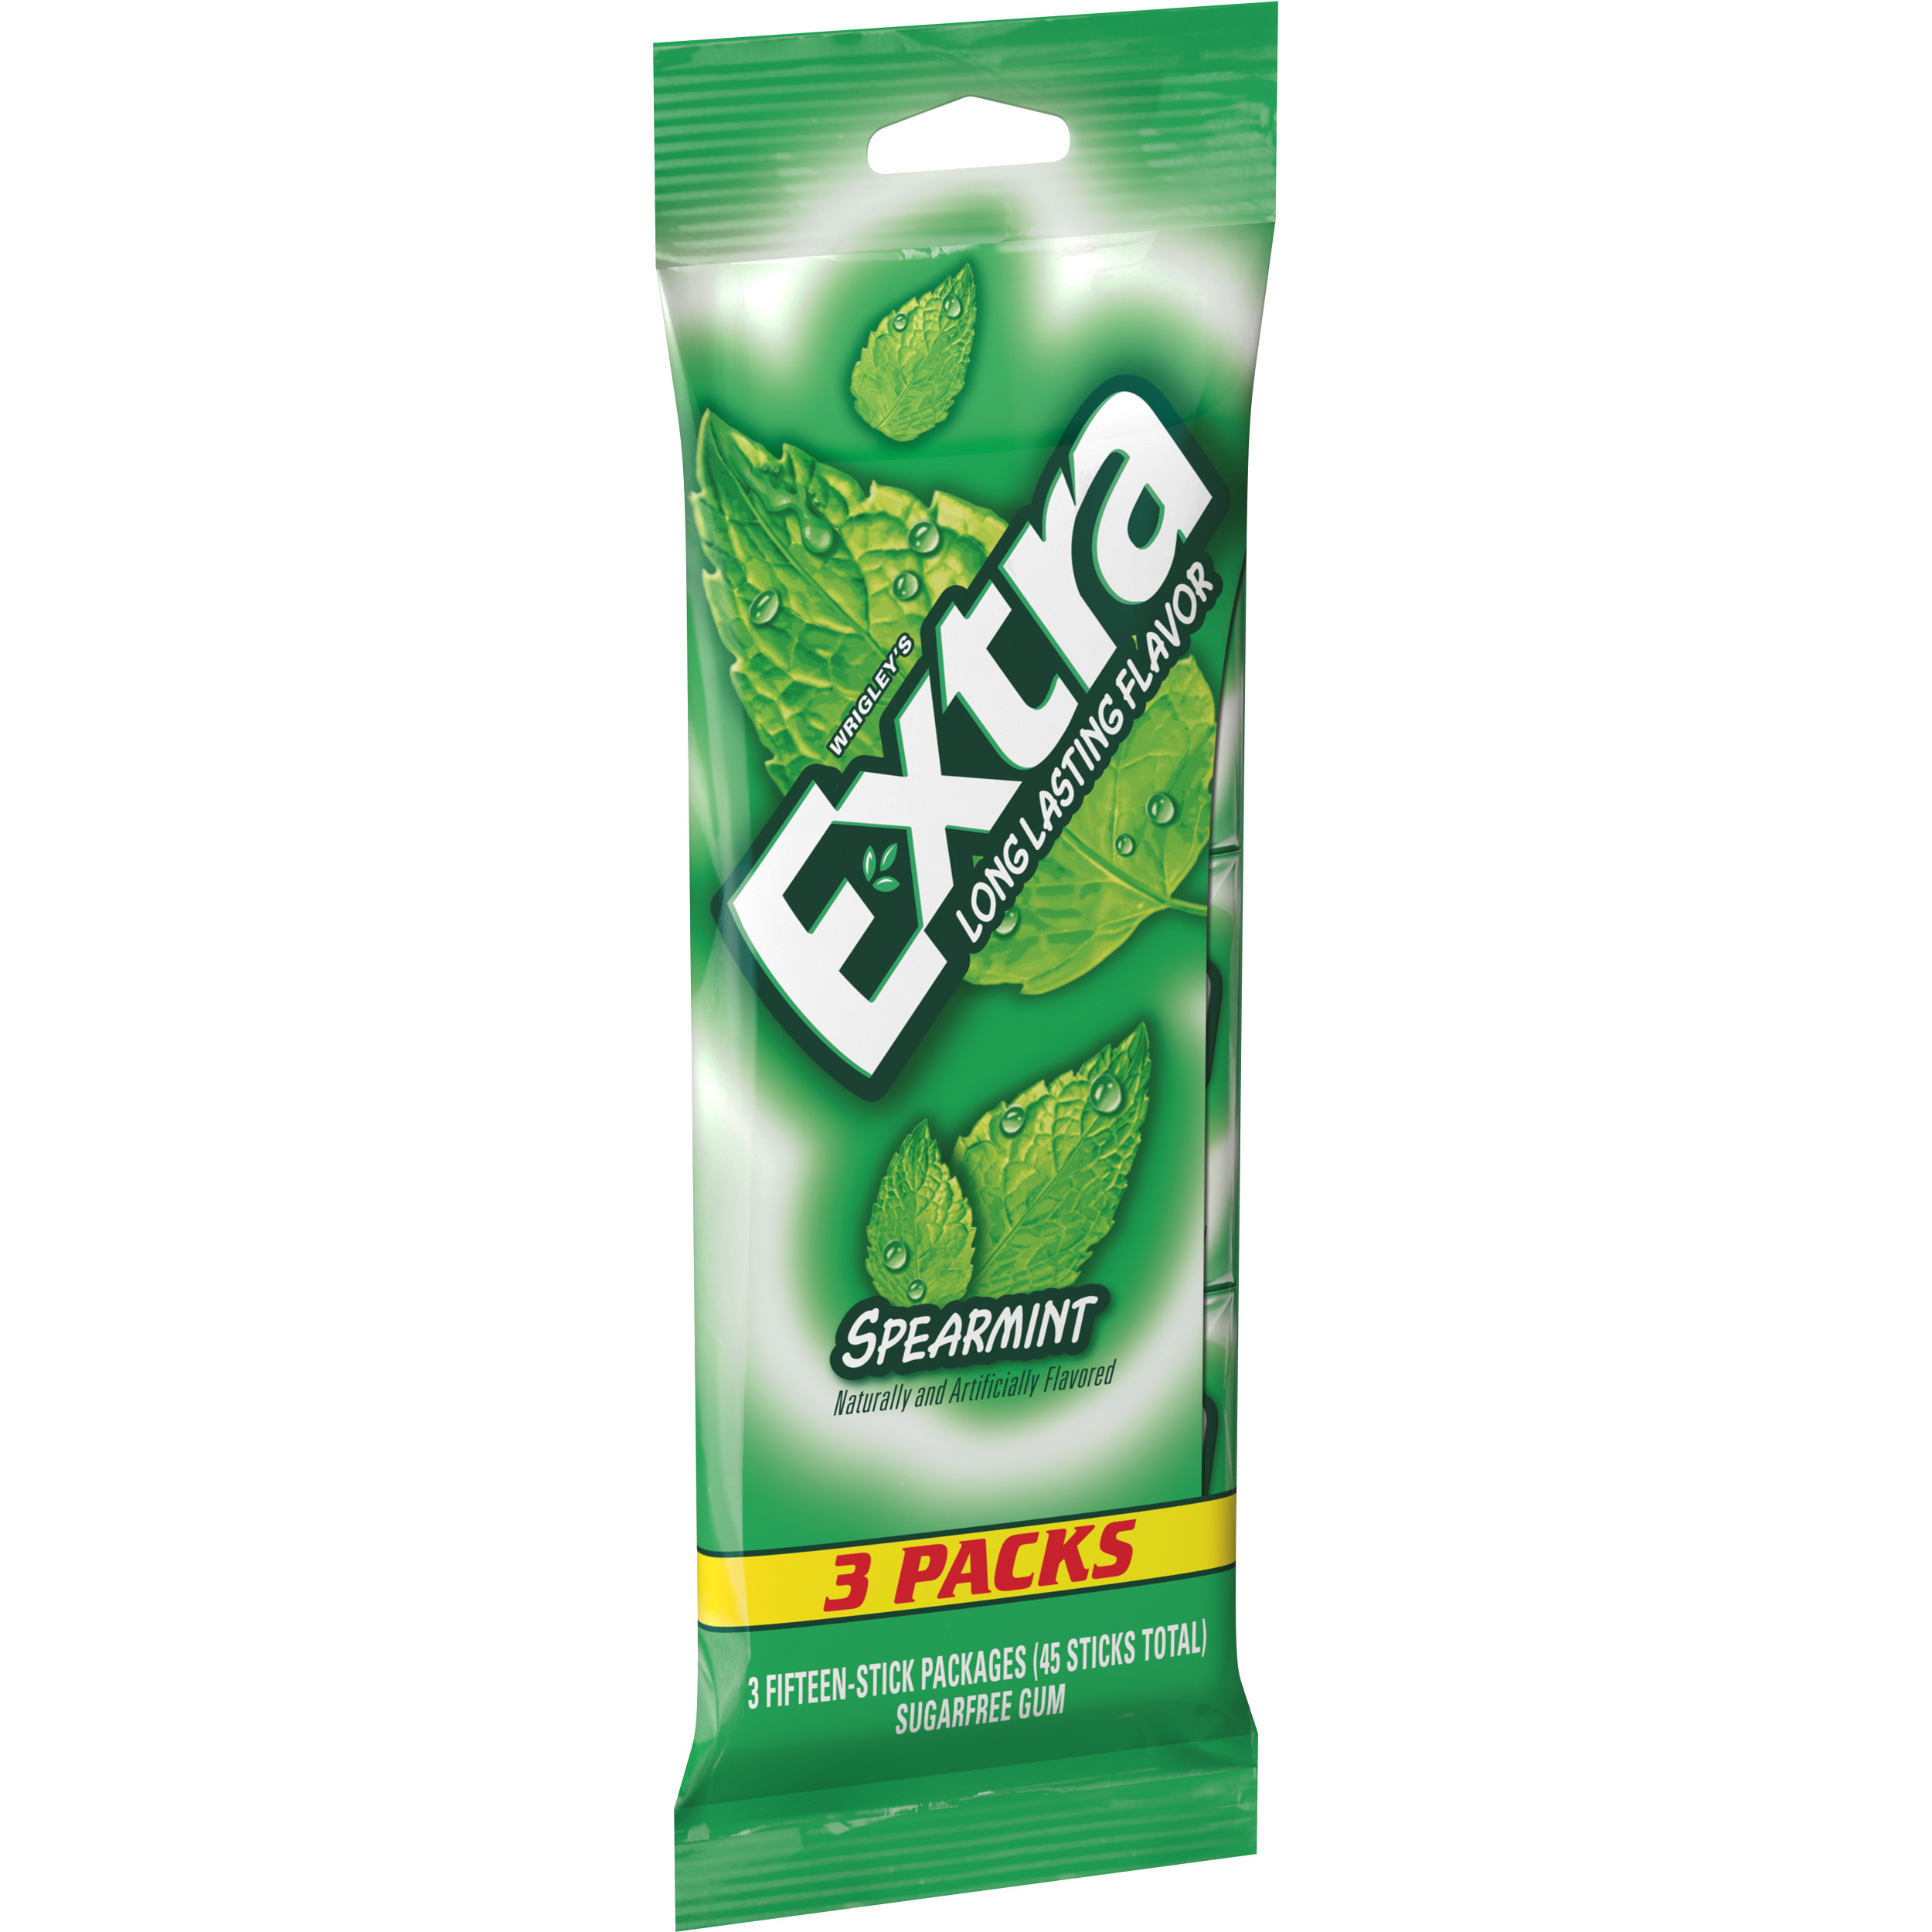 Extra Spearmint Sugarfree Gum, multipack (3 packs total)